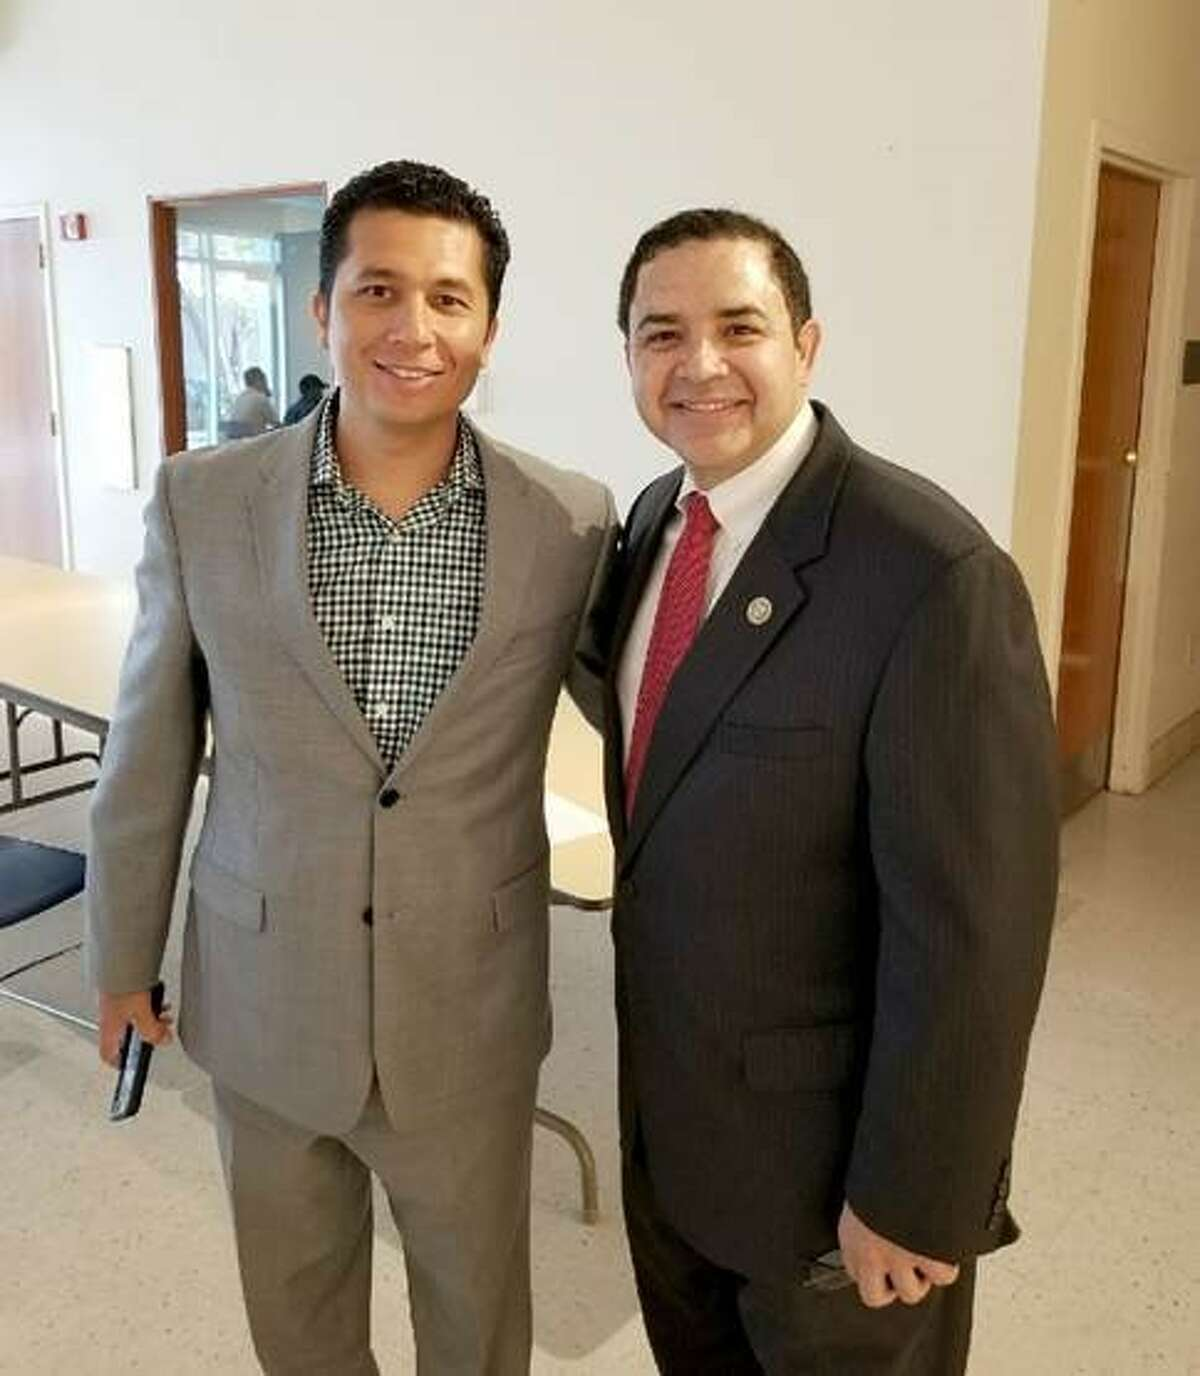 Congressman Cuellar, pictured right, meets with Sergio A. Martinez, Partnership Specialist - 2020 Census, U.S. Census Bureau-Denver Region, during a meeting at the Laredo Public Library Tuesday to discuss methods on how to properly count everyone in our community for the 2020 Census.